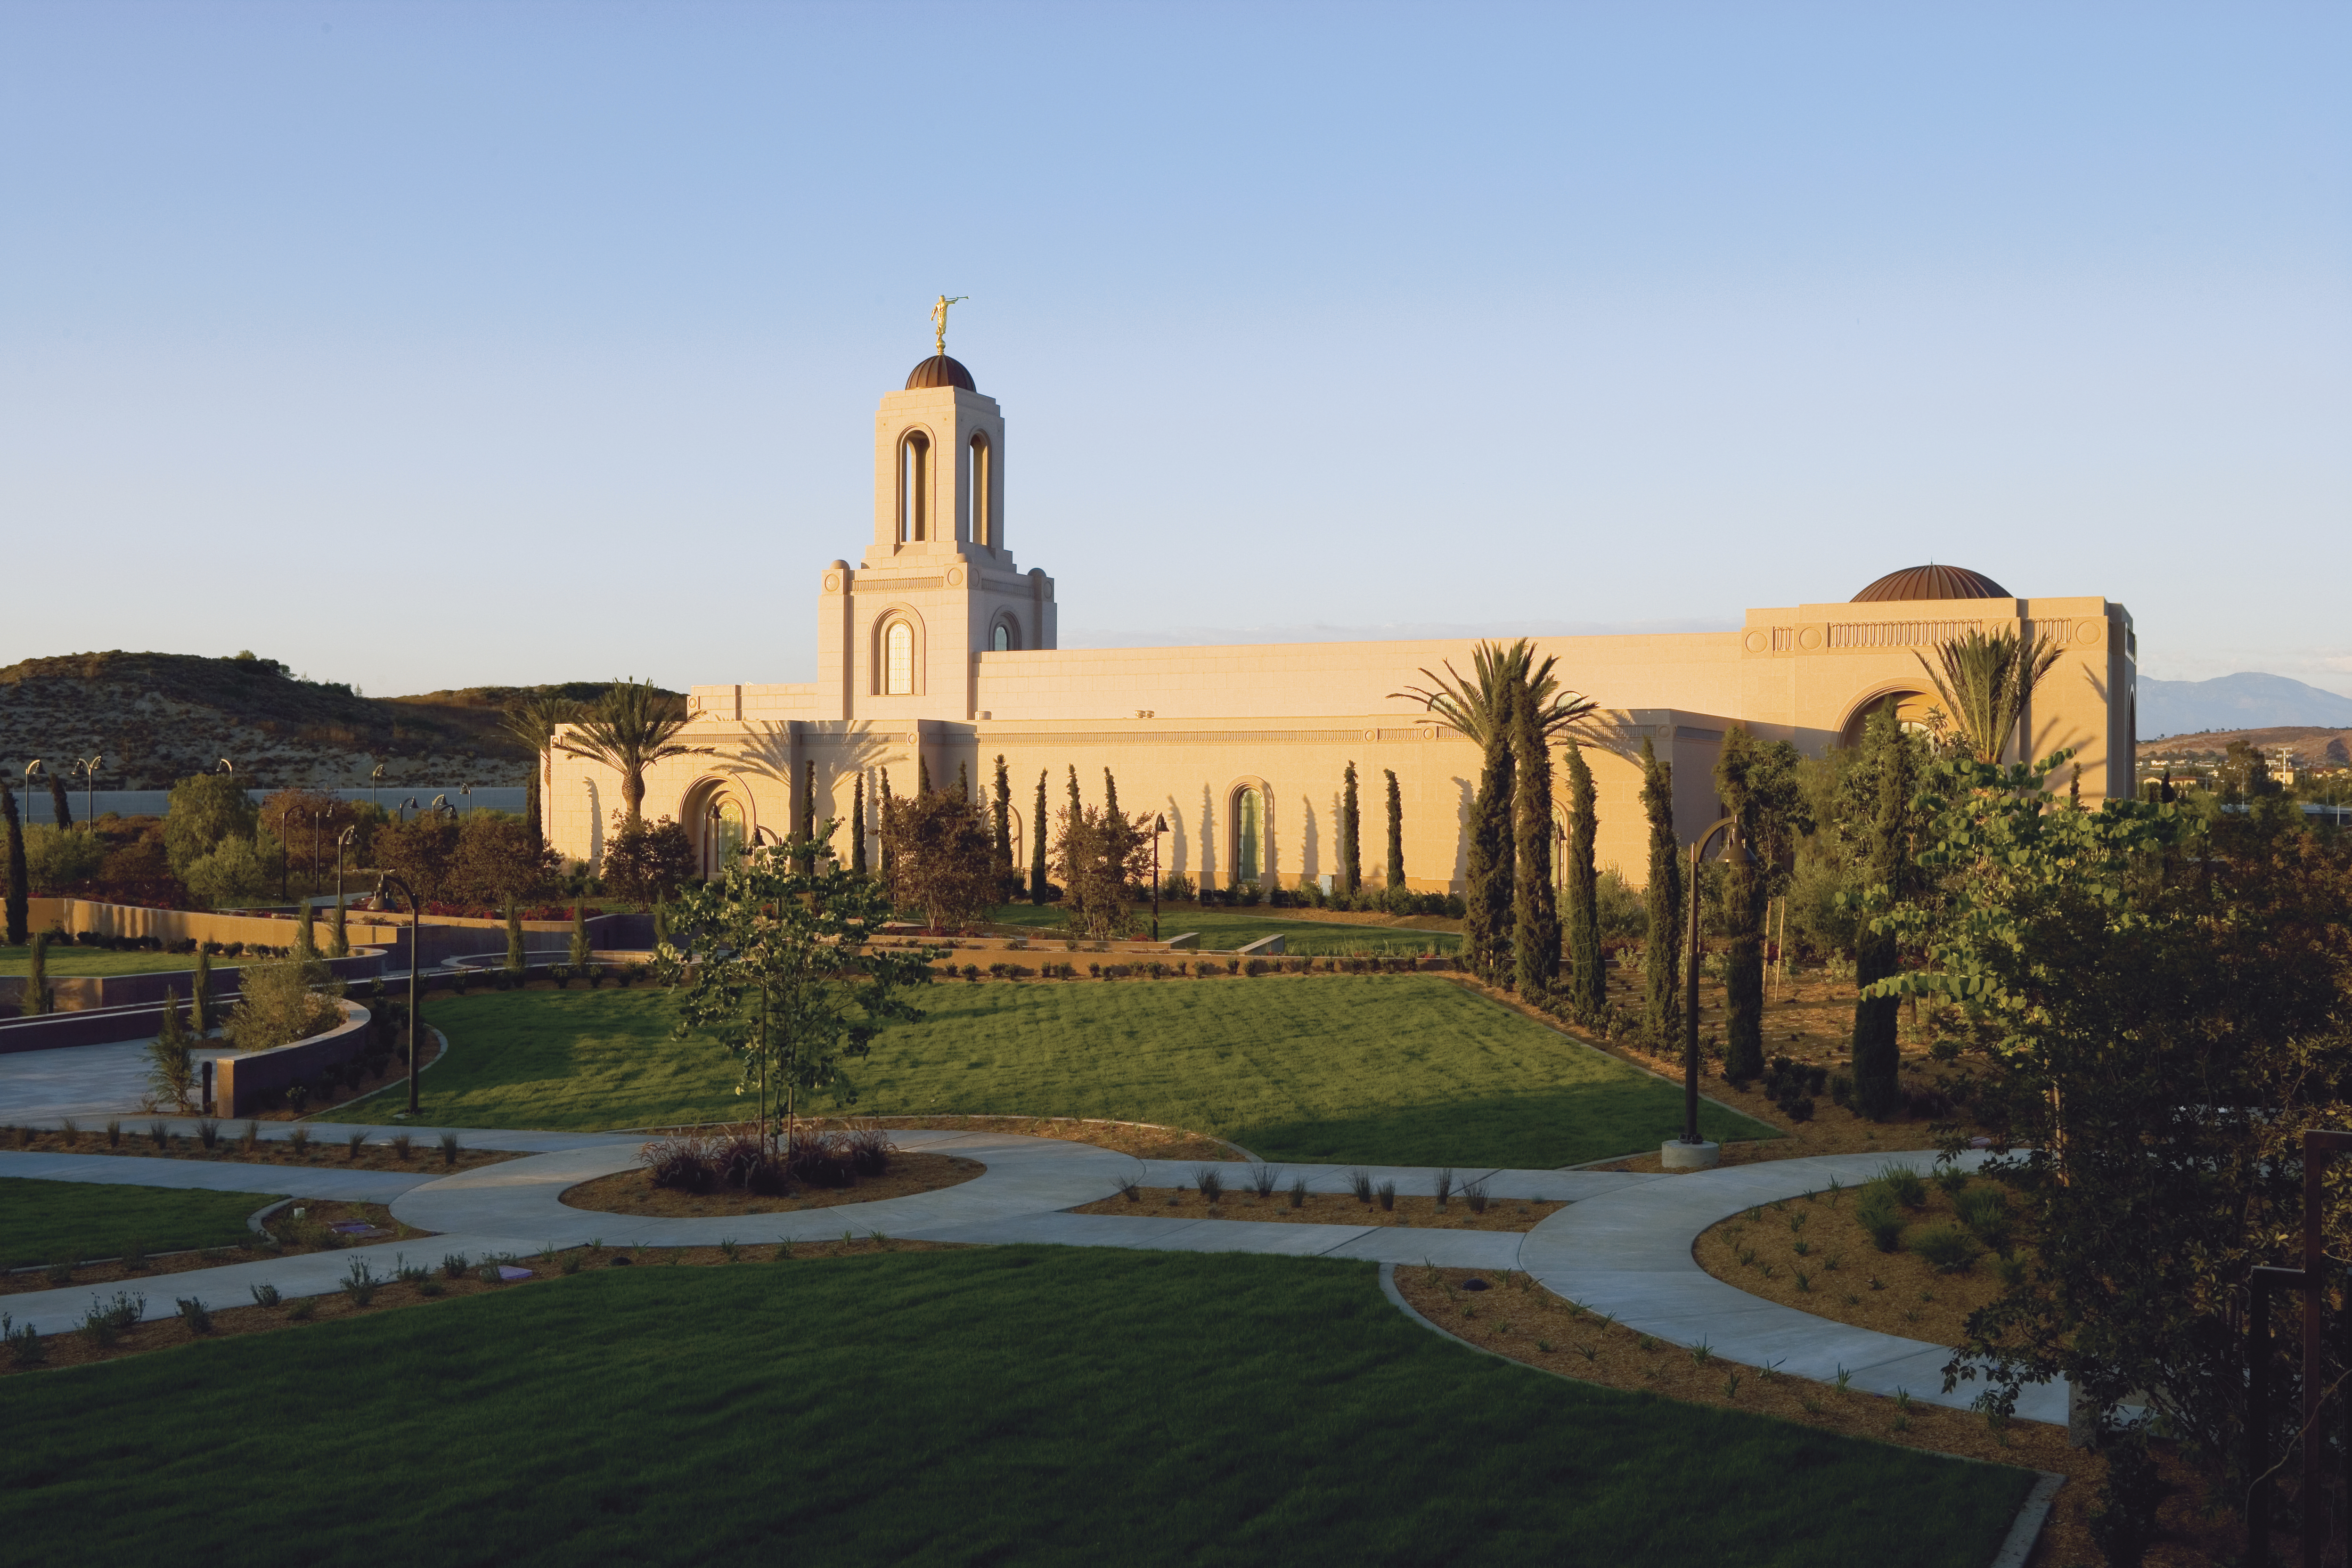 The Newport Beach California Temple at sunset on a clear day.